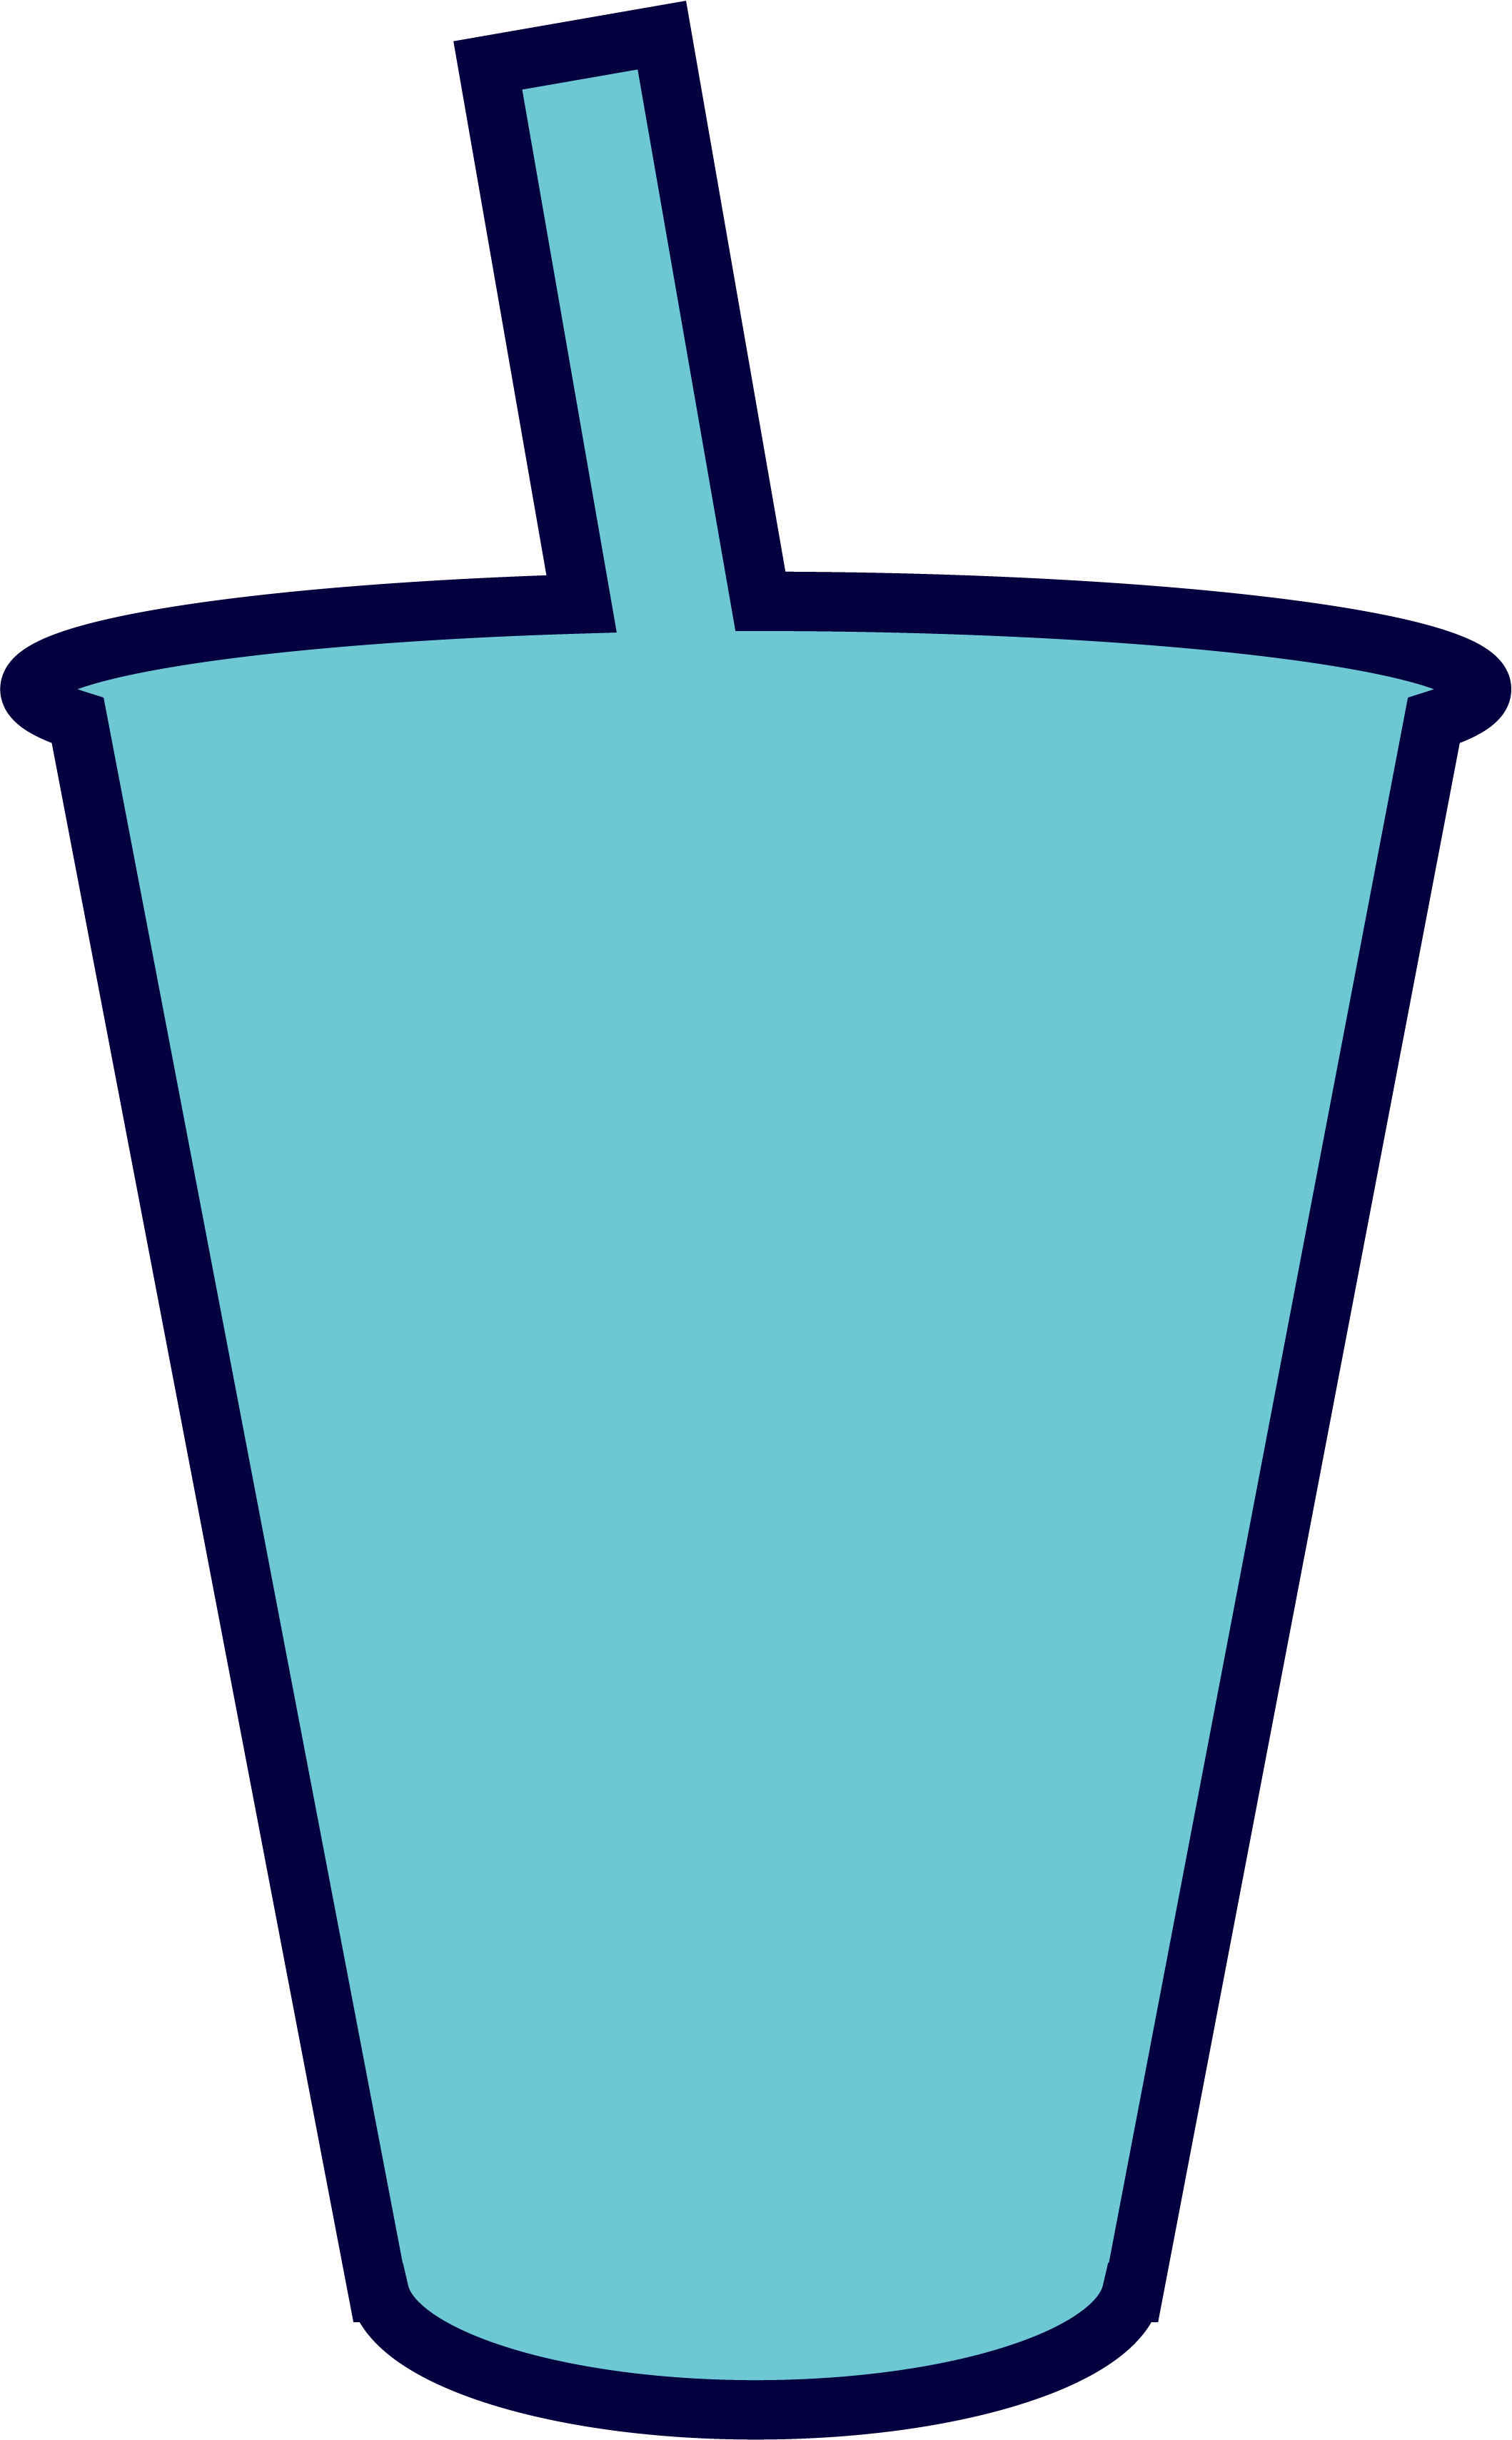 Boba cup